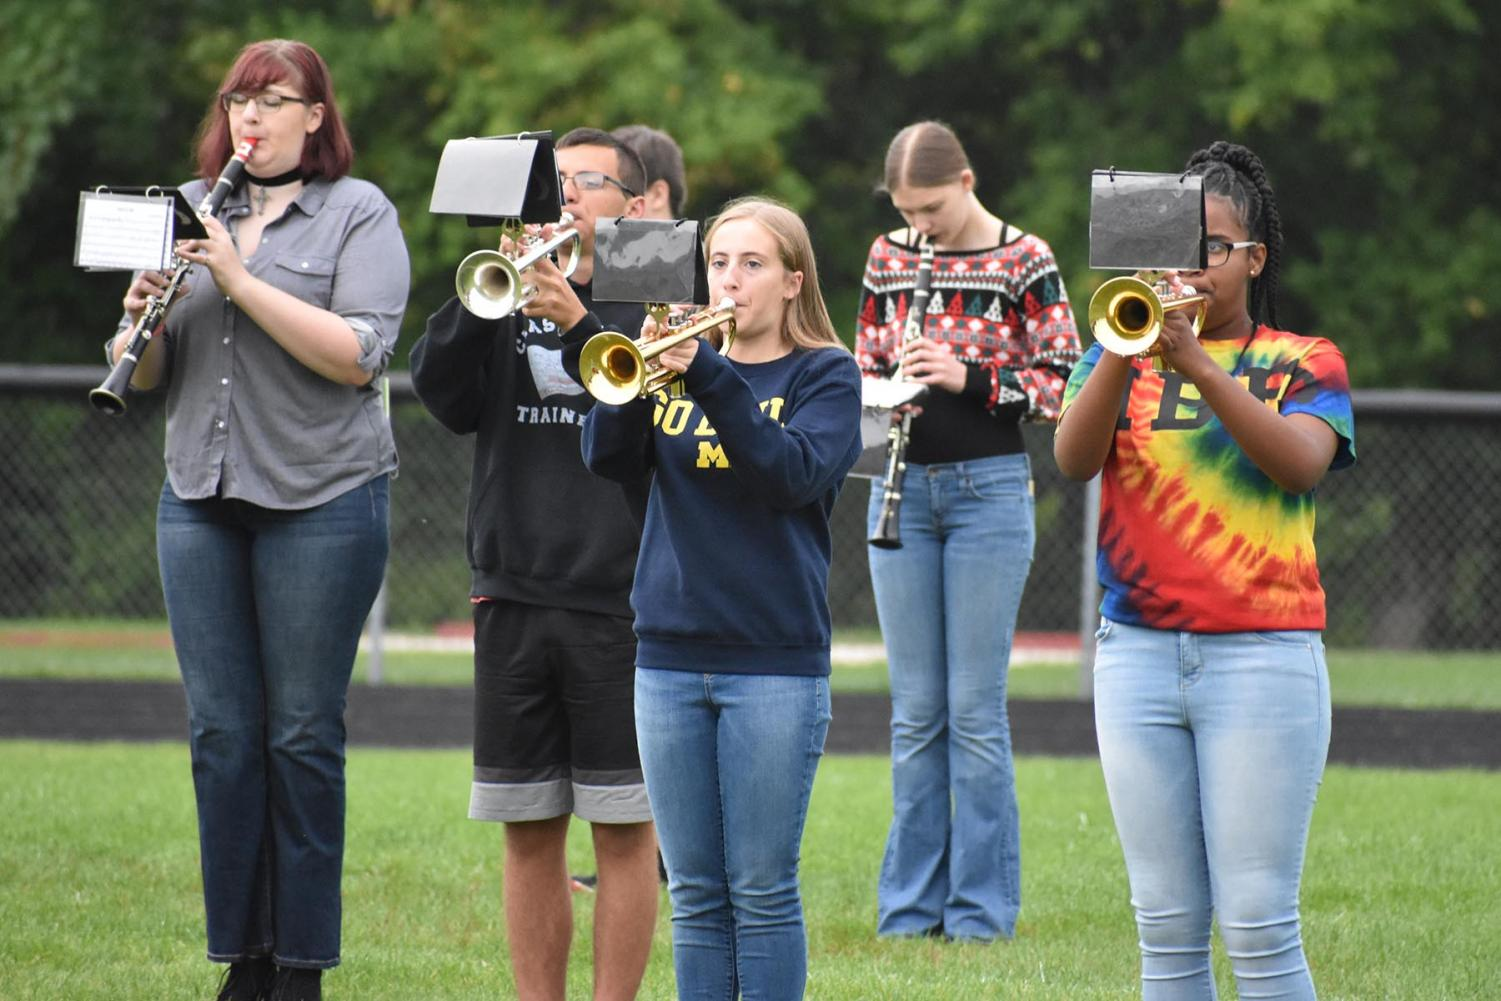 The marching band practices on the football field in preparation for Friday's games.